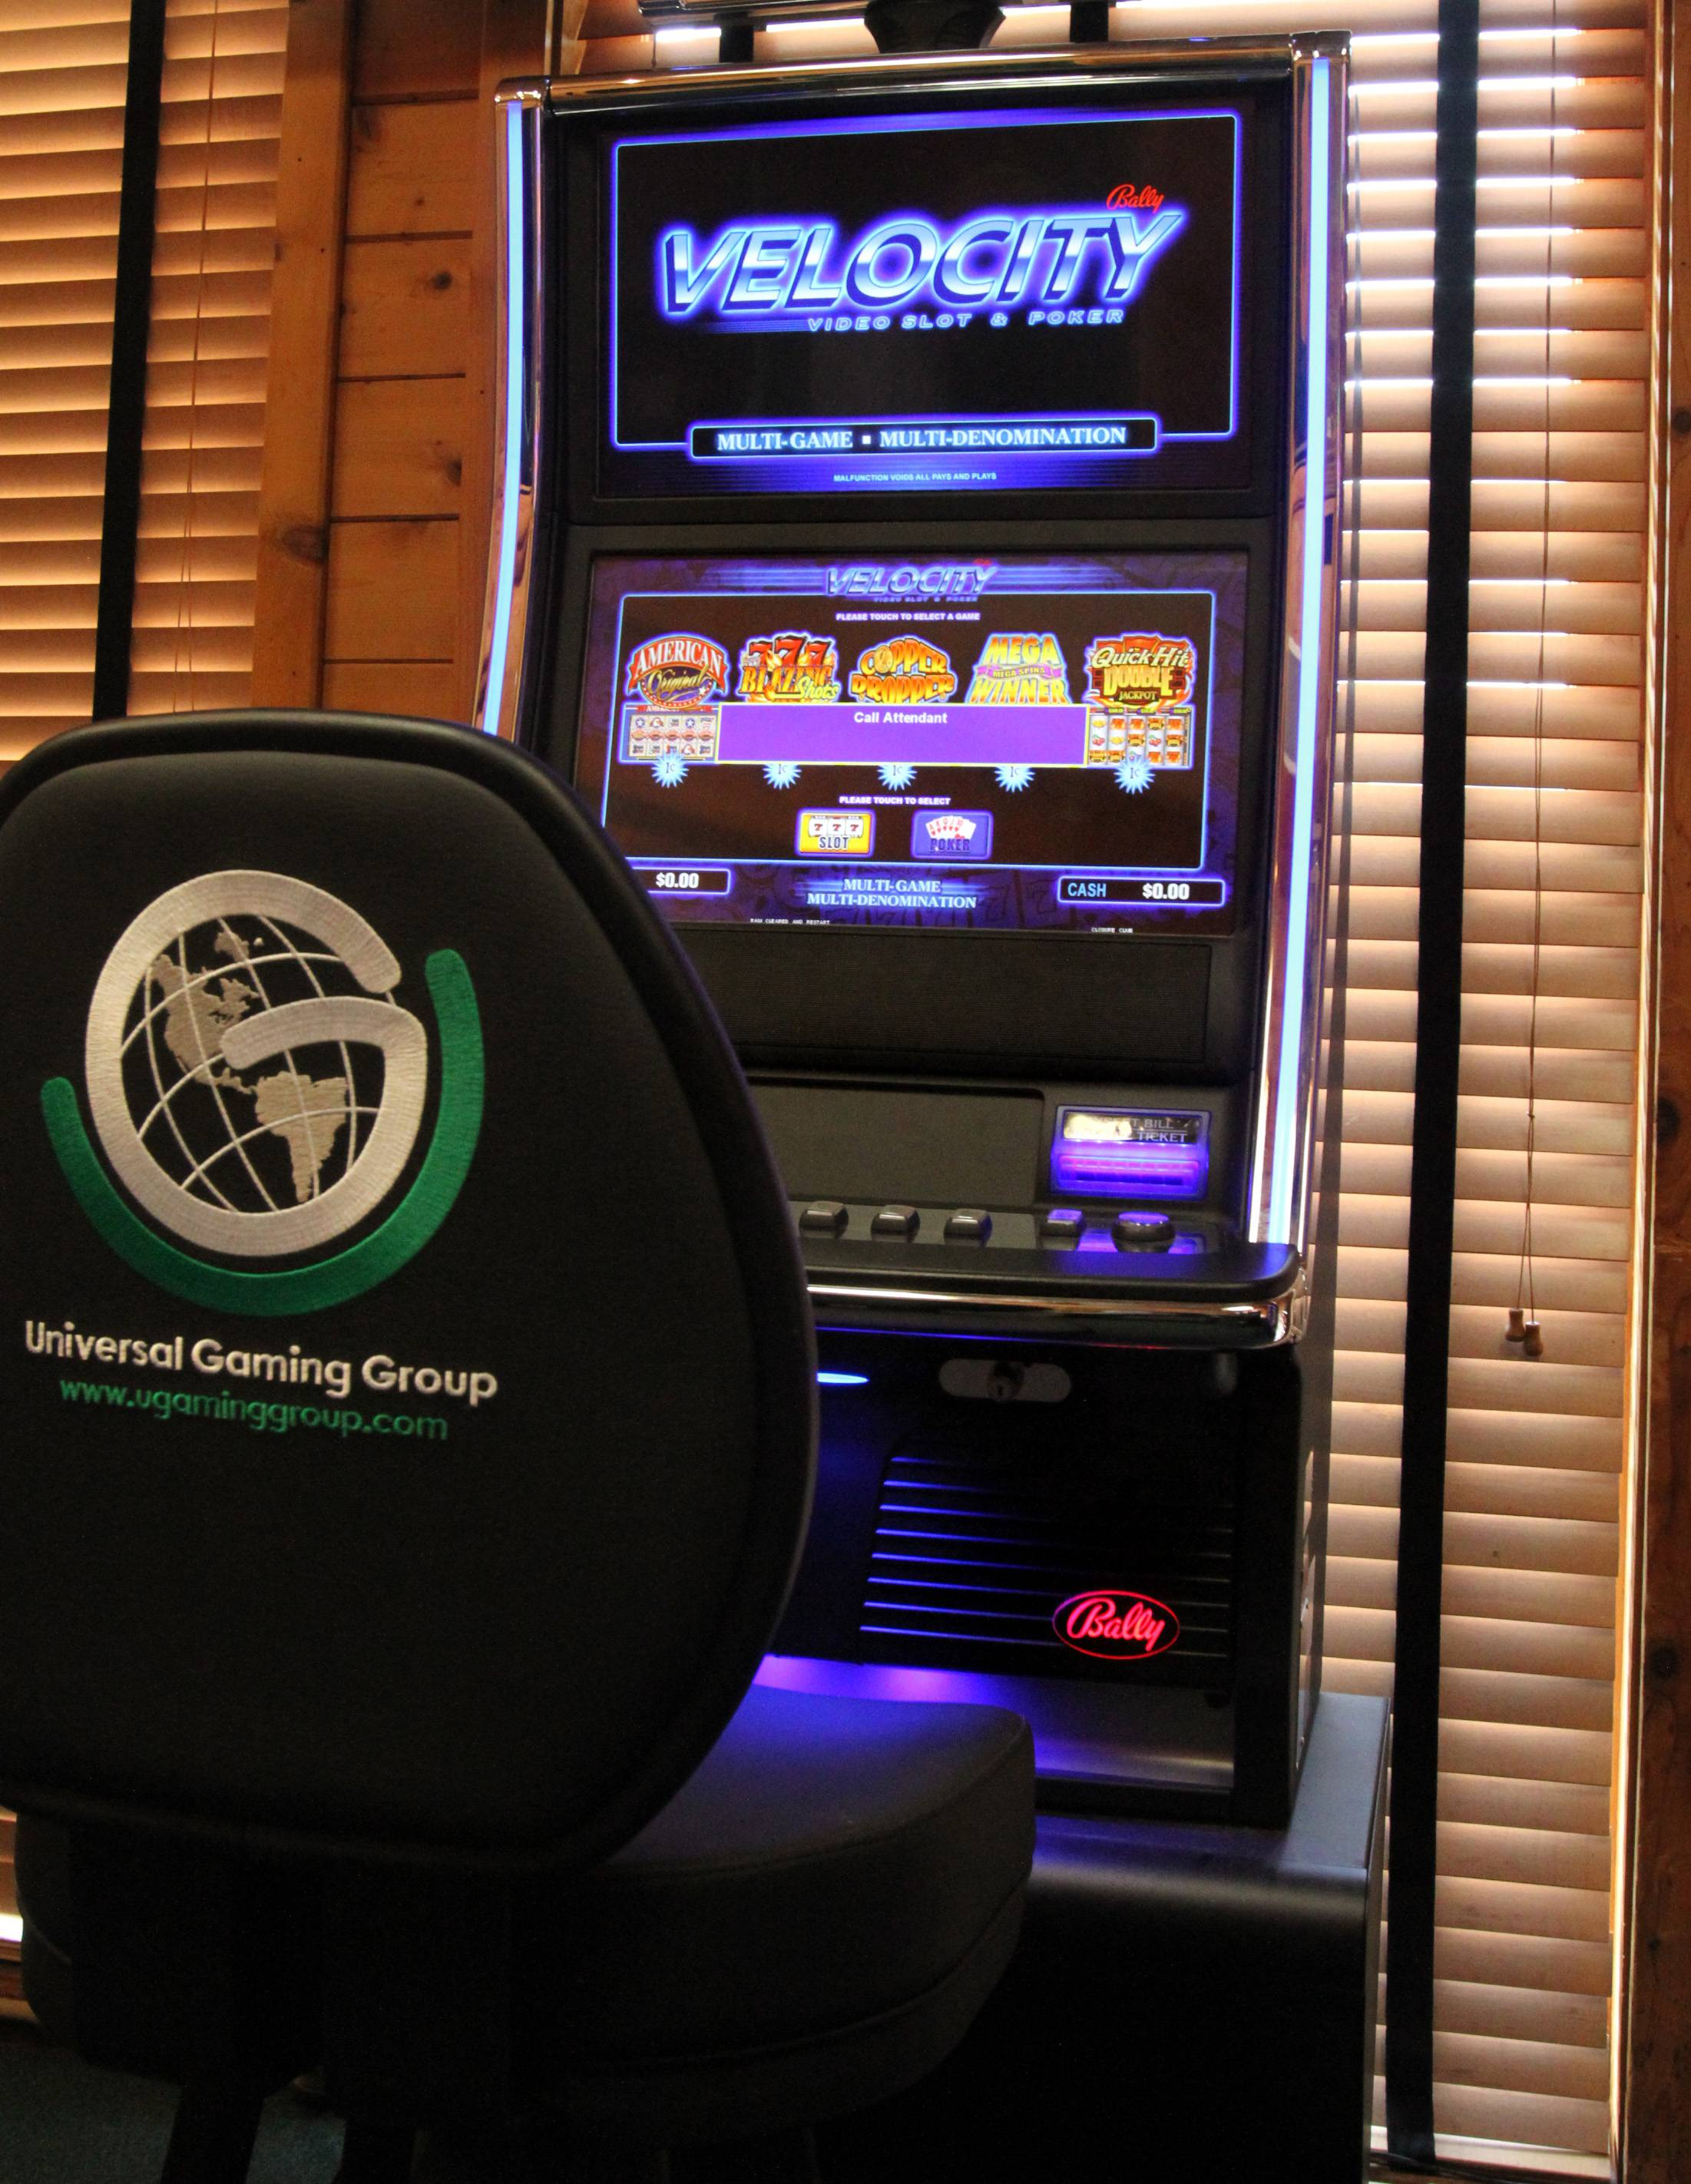 Rauner: No budget means no video gambling money for towns